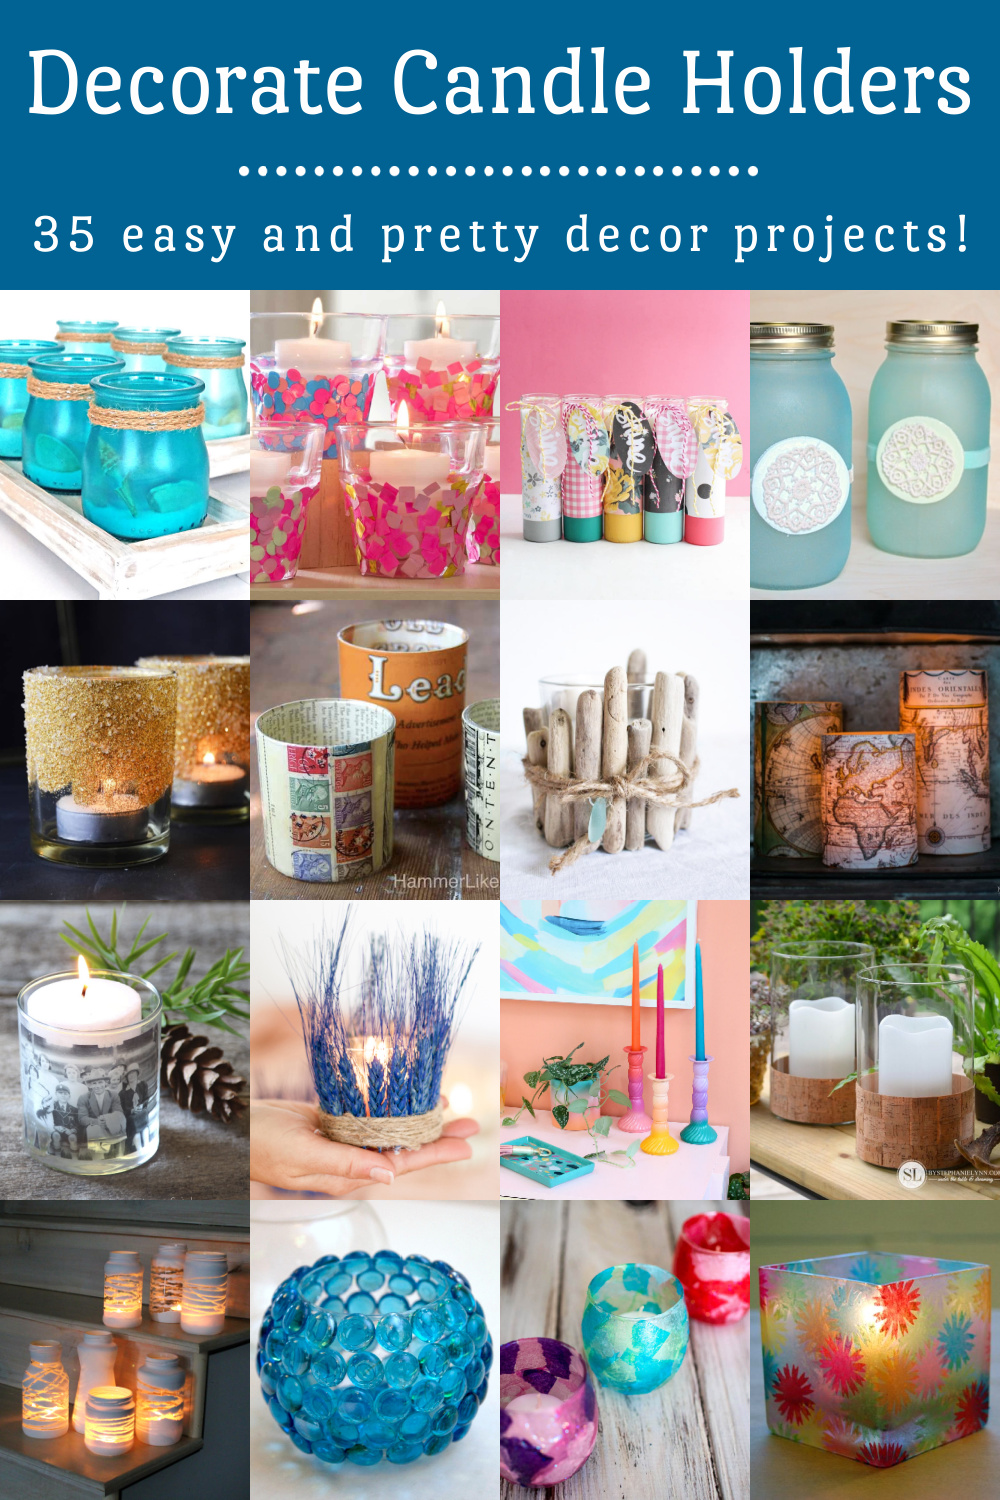 Decorate Candle Holders